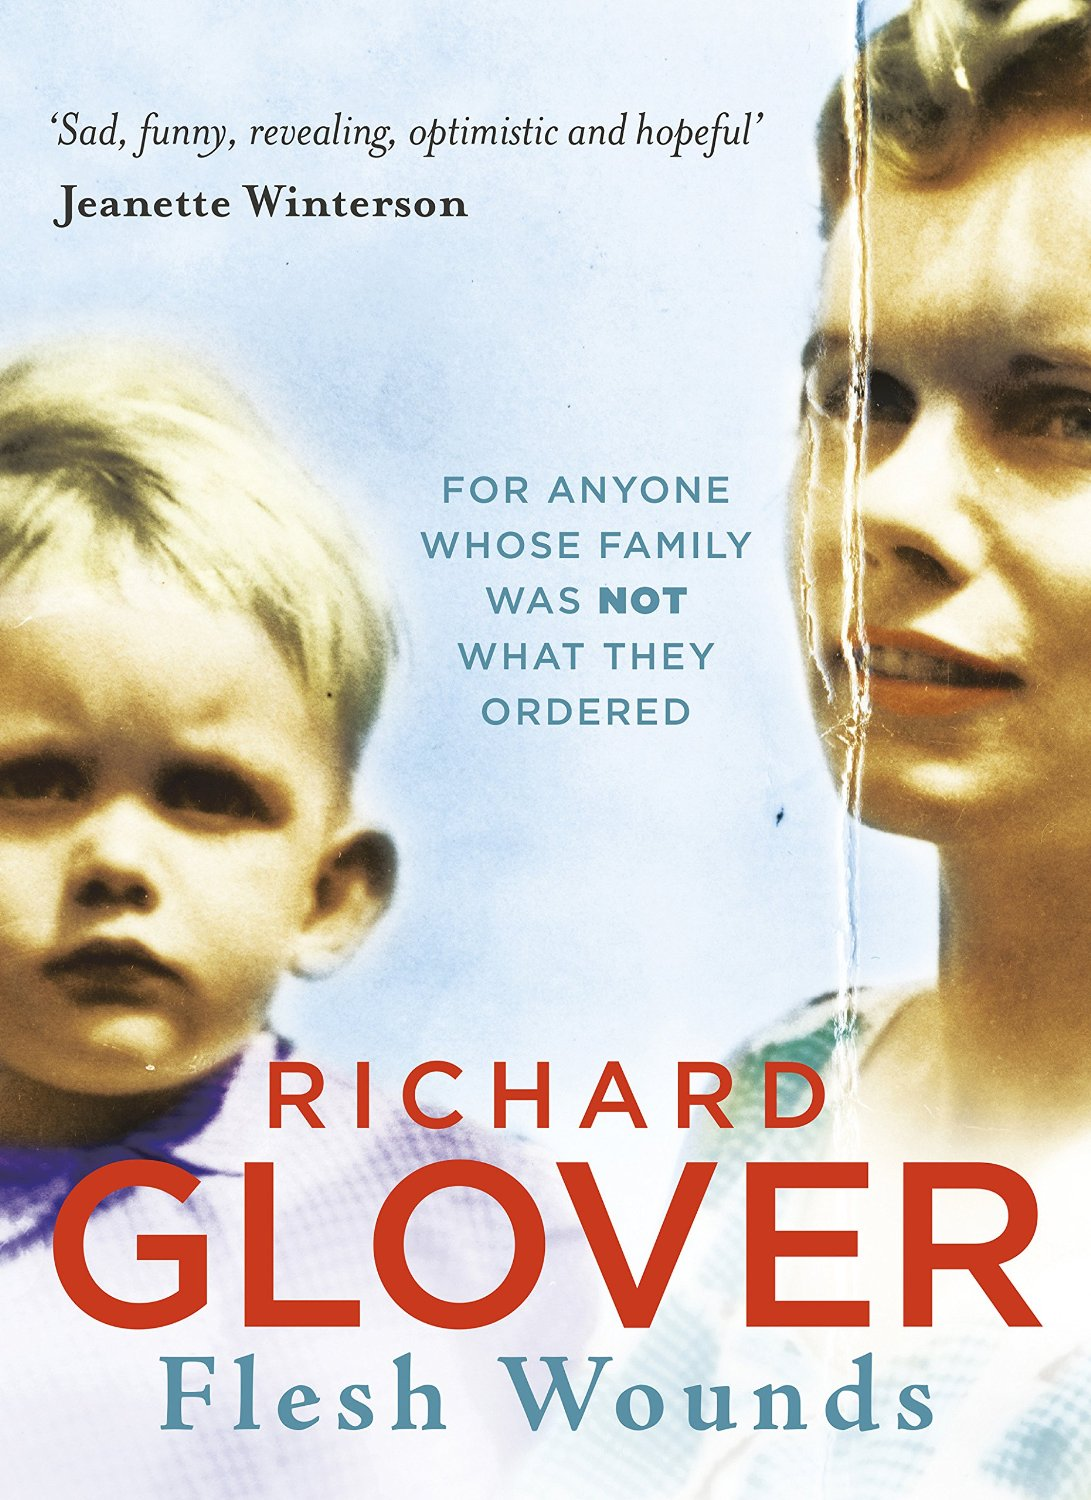 Richard Glover's book, Flesh Wounds